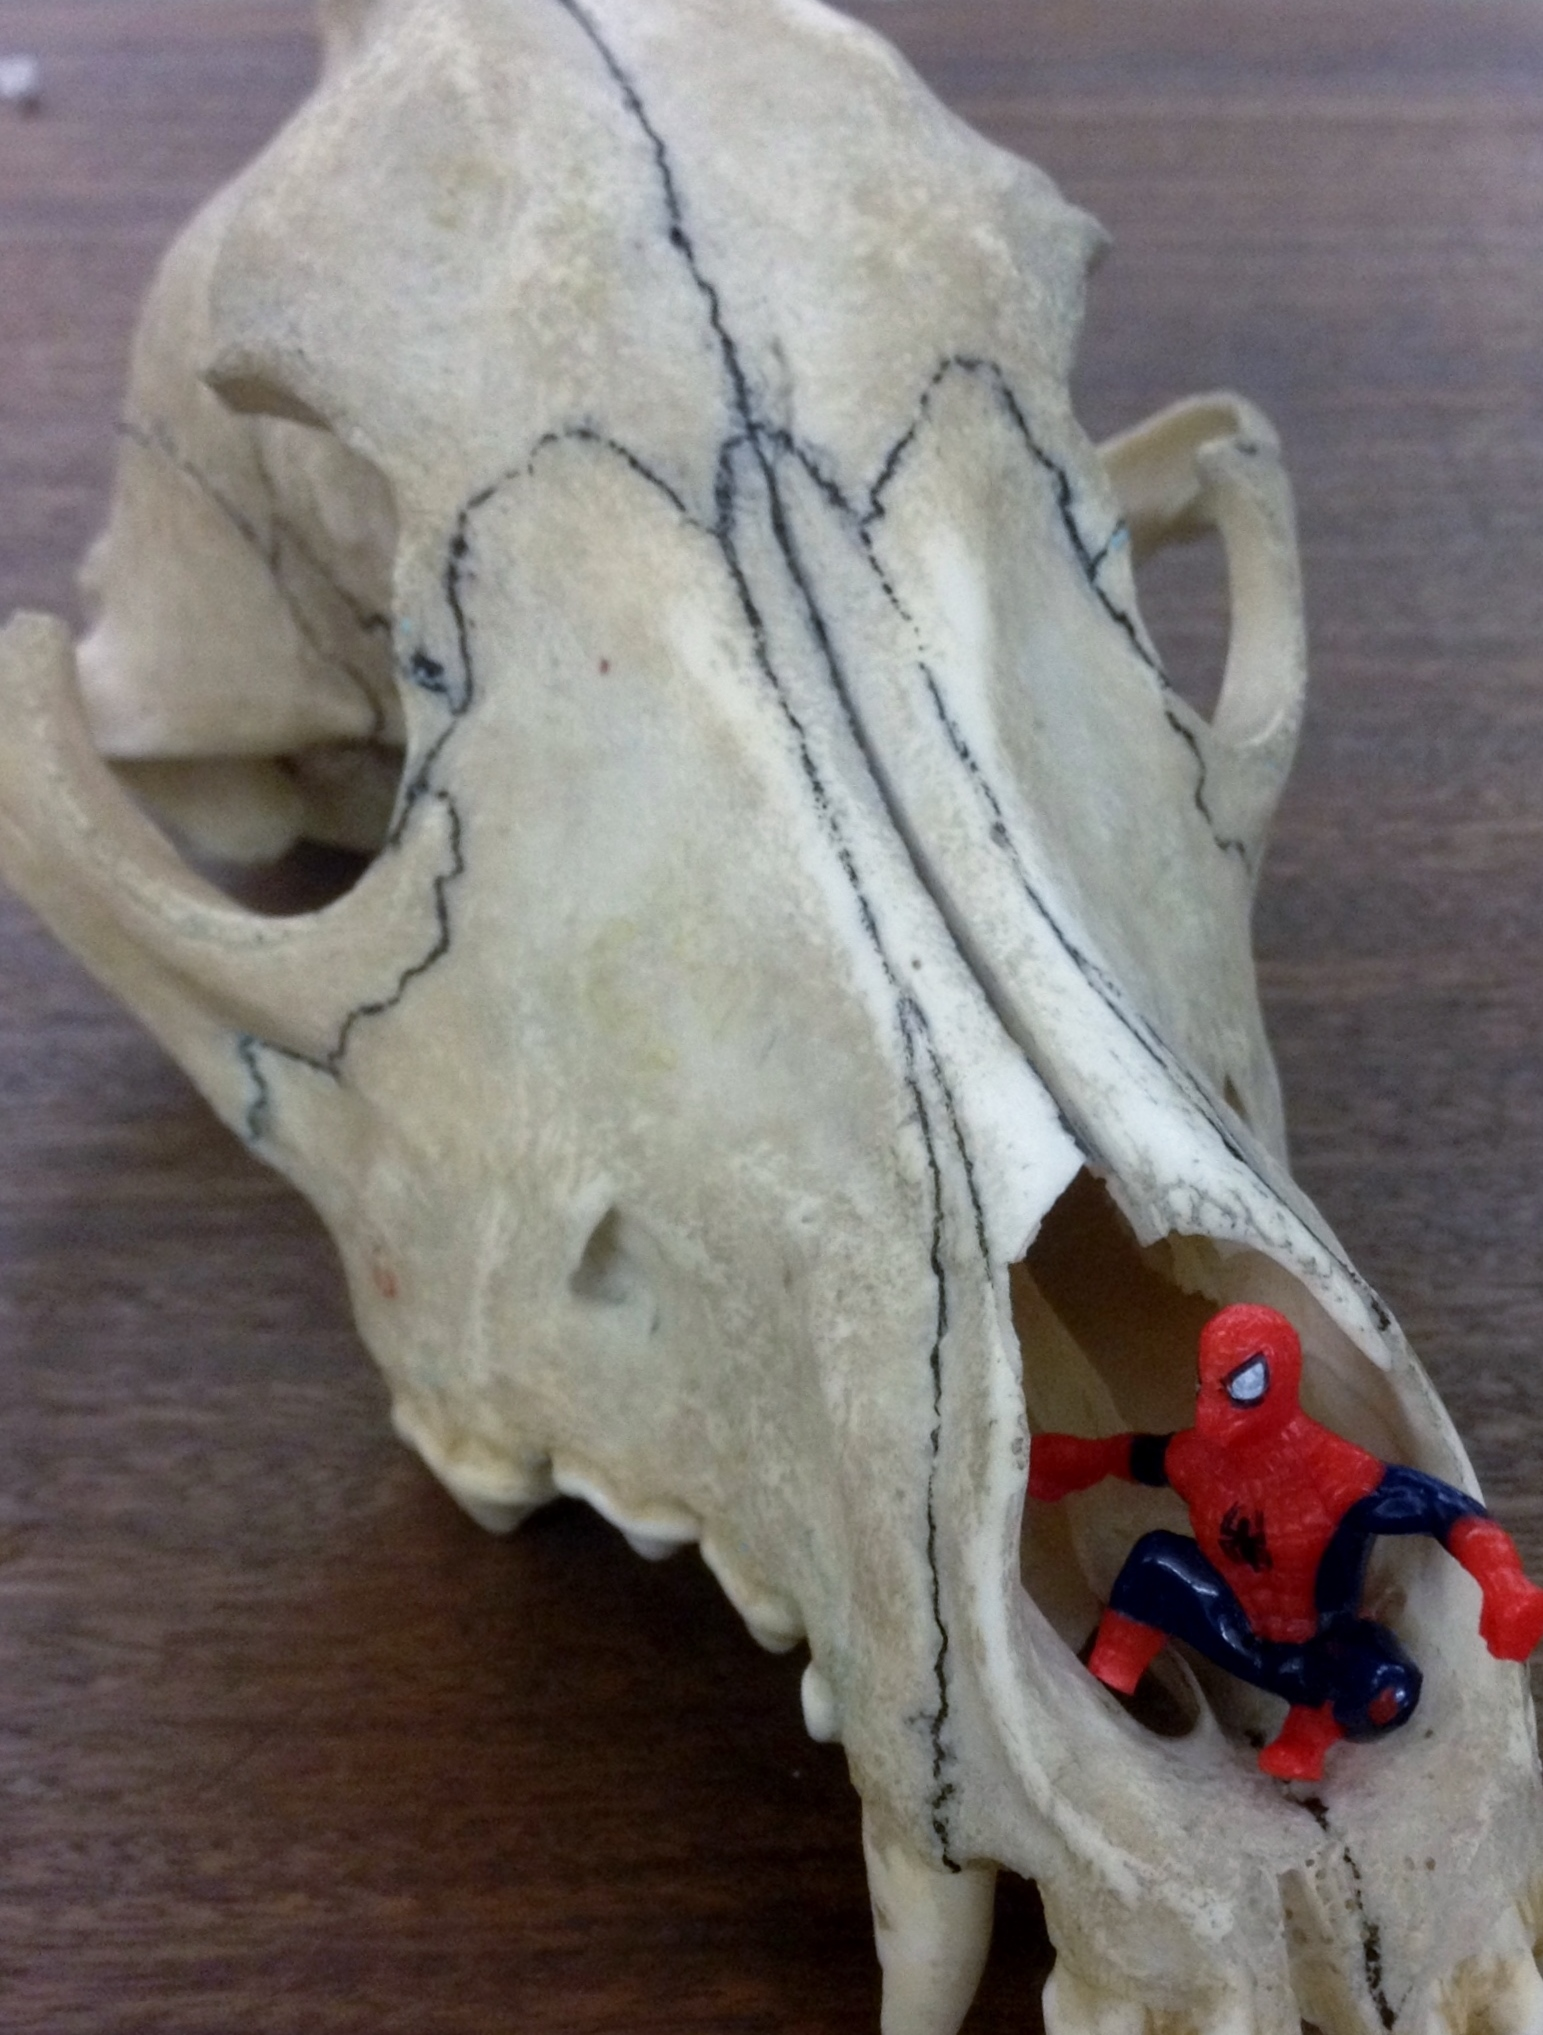 Childs toy Spiderman in the eye socket of a greyhound skull